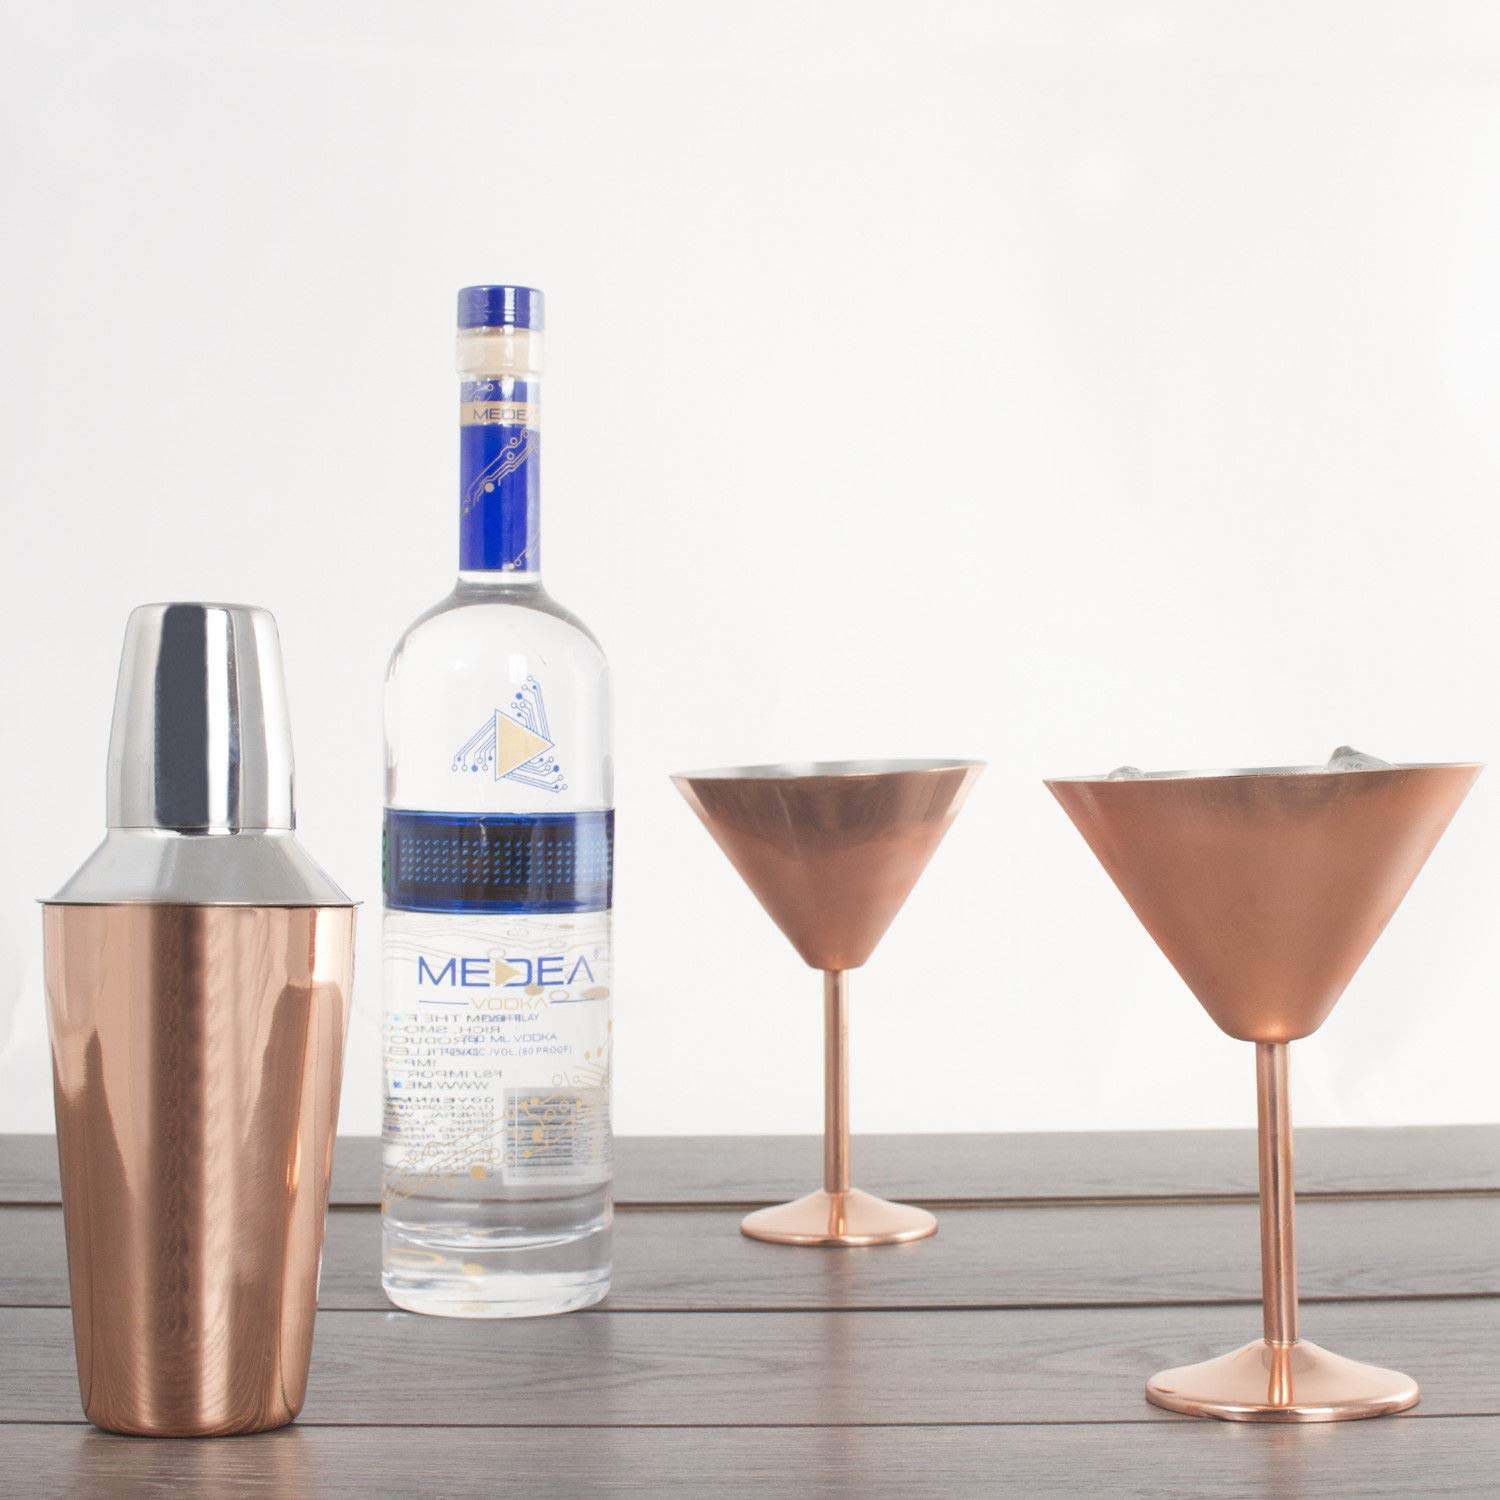 3 pc Copper Stainless Steel Martini Gift Set - 2 Large Martini Glasses and Shaker Set - Copper Martini Shaker Set (Copper)